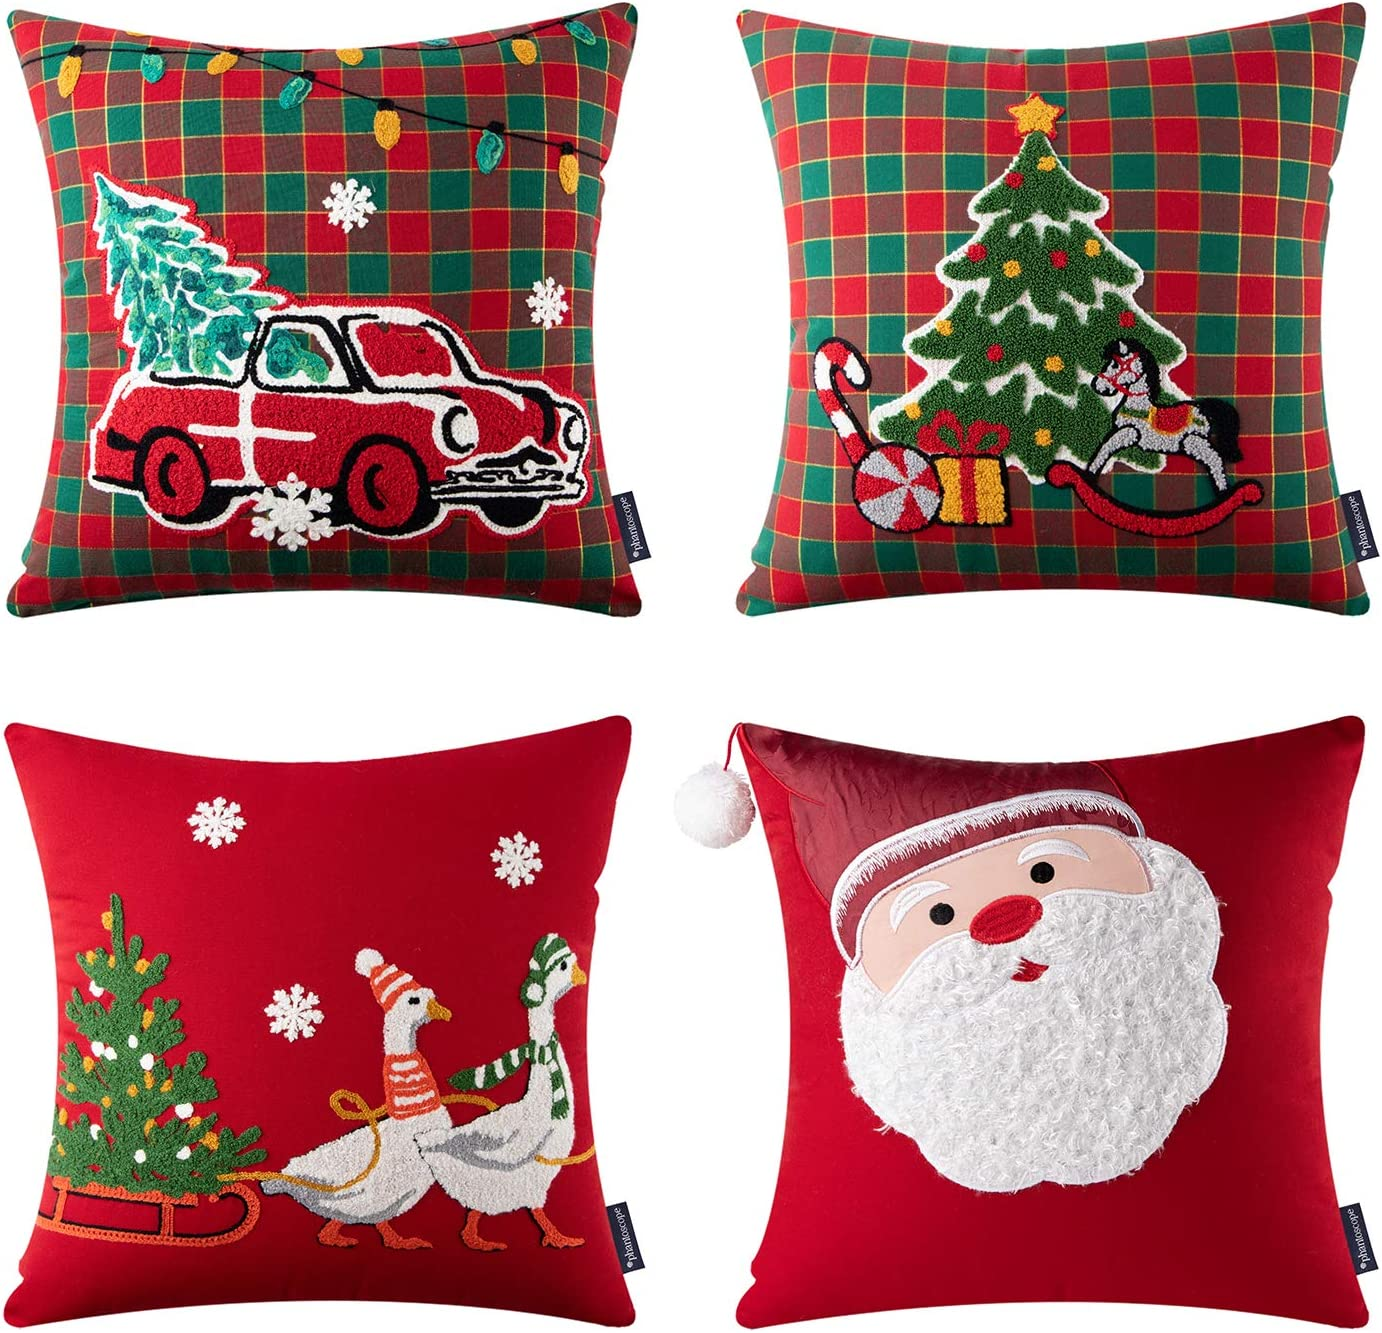 Embroidered Santa, Tree, Car and Reindeer Christmas Pillow Covers